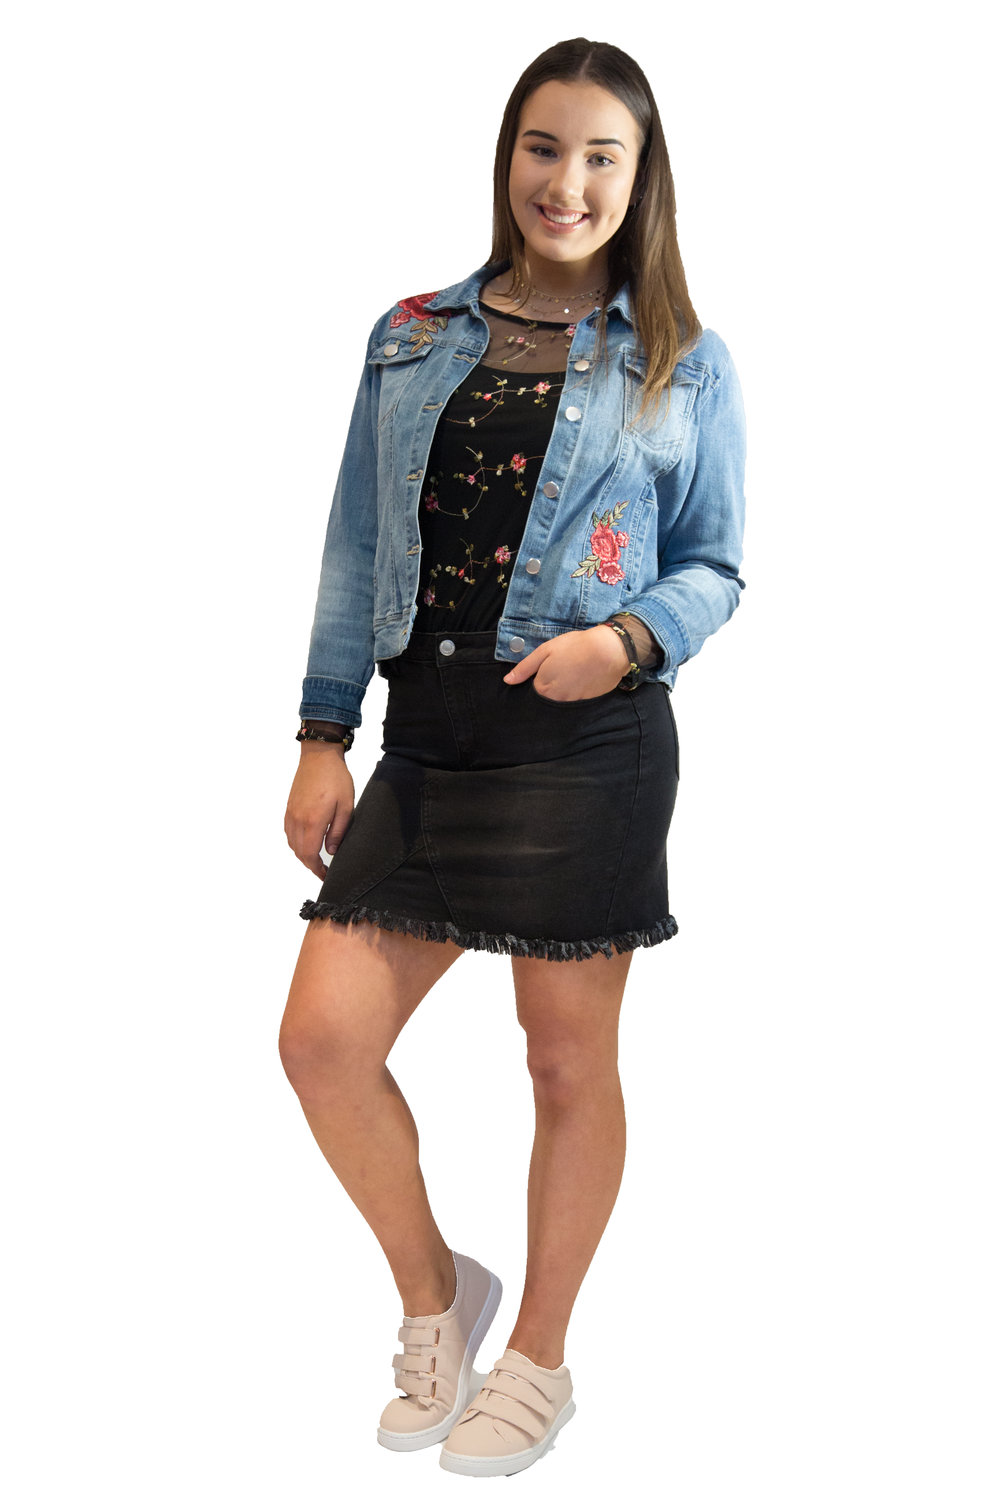 KMART /  BLACK DENIM SKIRT  /  $20.00  SUZANNE GRAE /    JACKET  /  $79.95  JEANSWEST /  NECKLACE  /  $34.99  KMART /  PINK SNEAKERS  /  $17.00